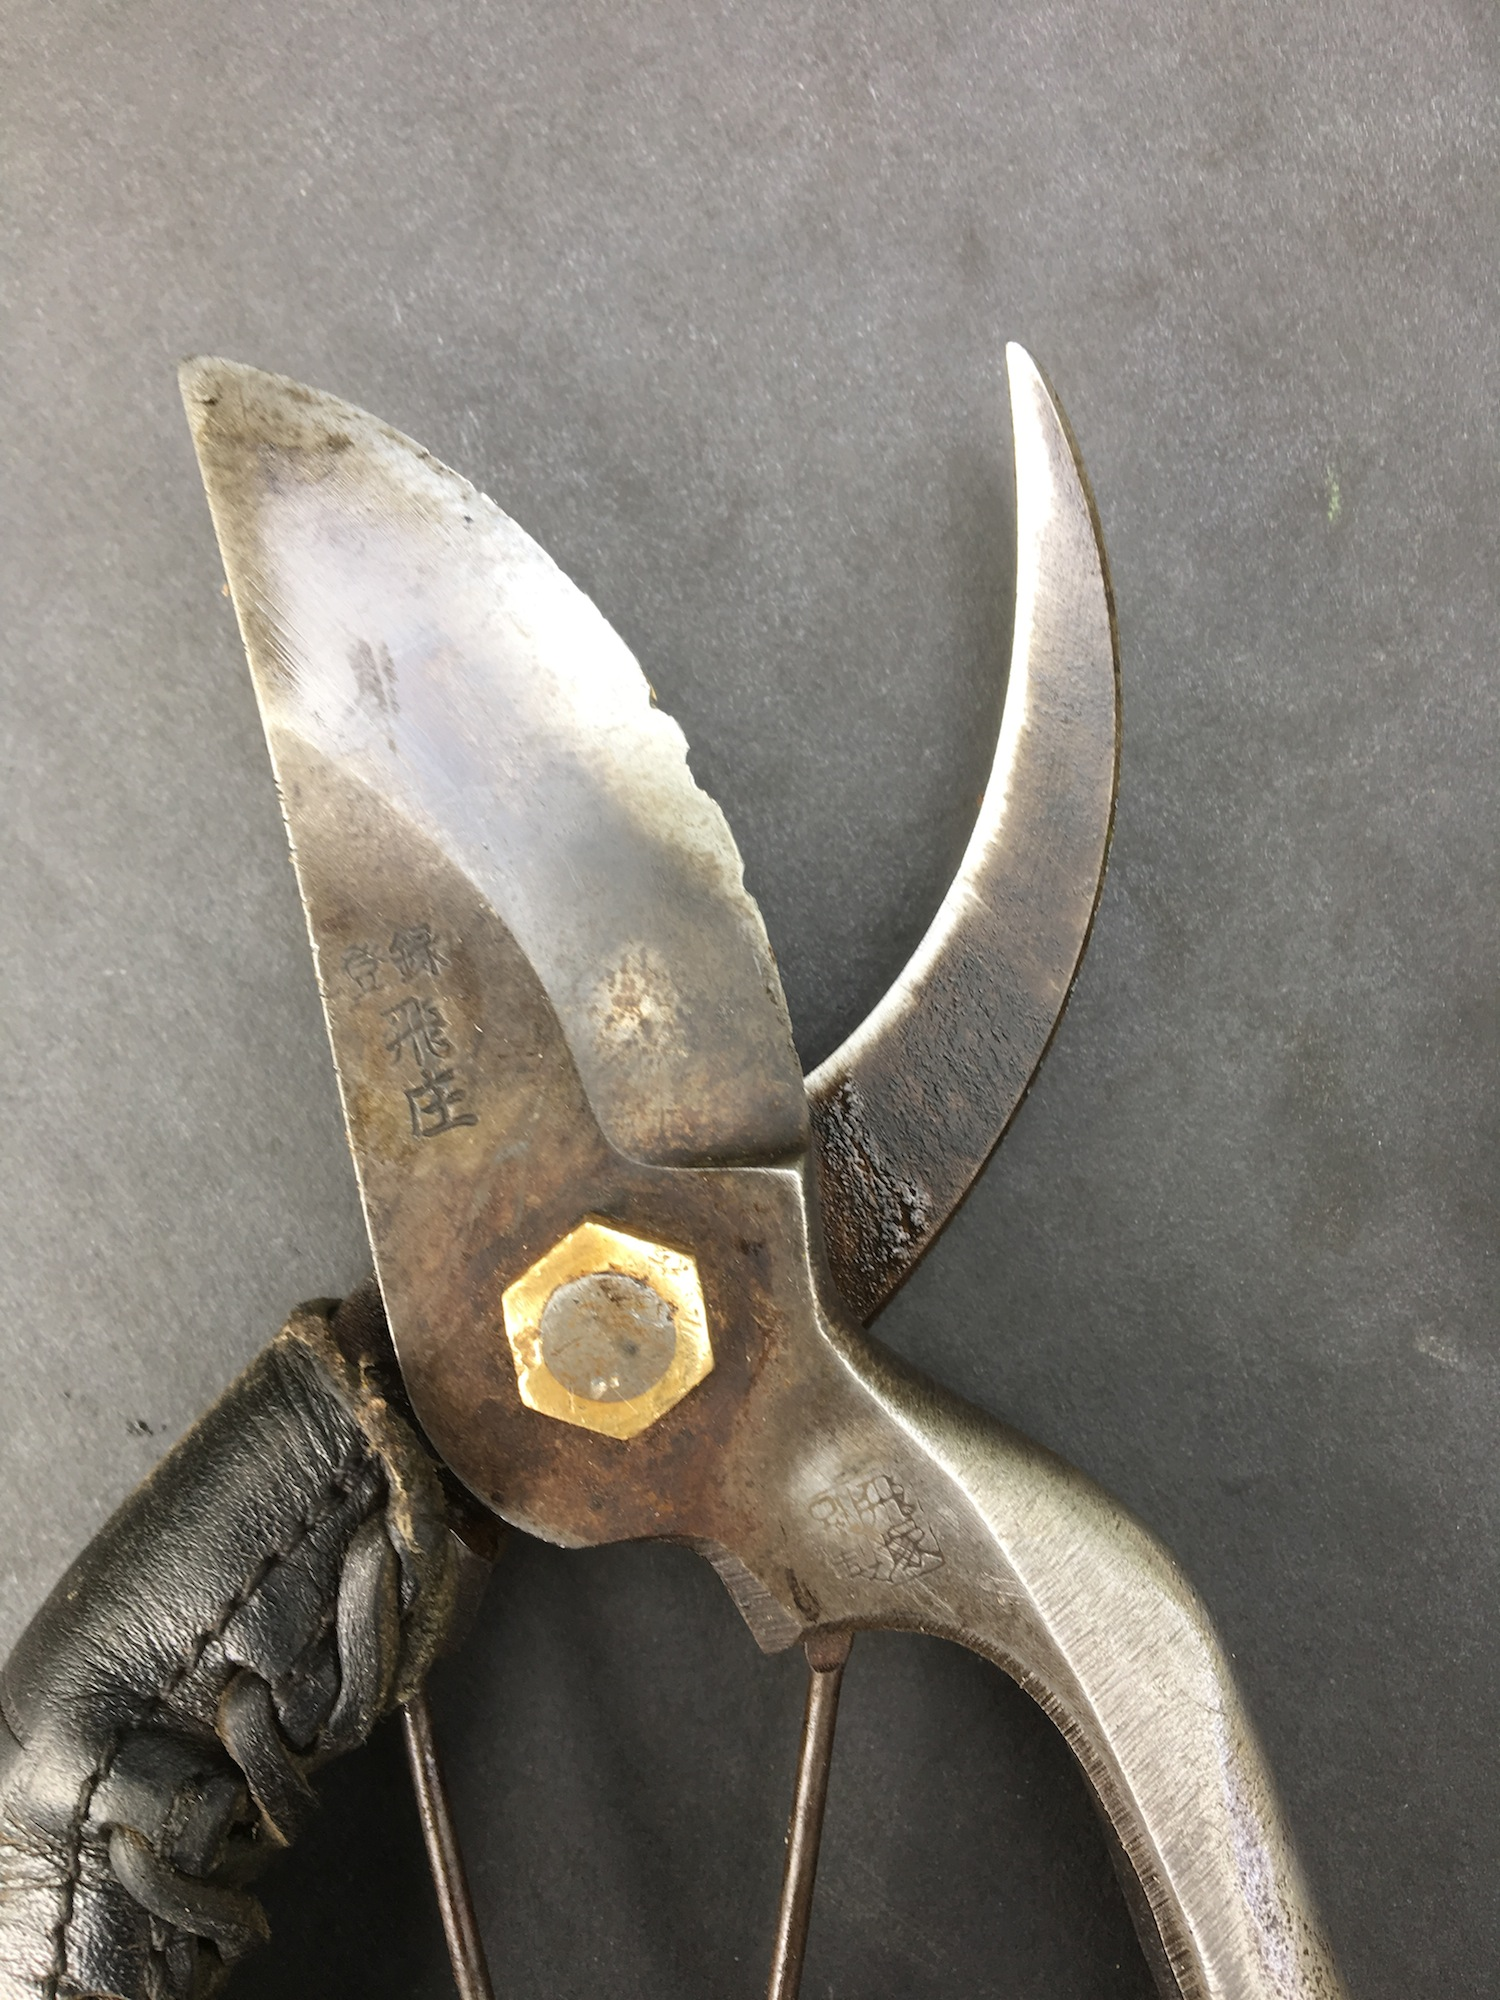 Scissor repair low res before.JPG